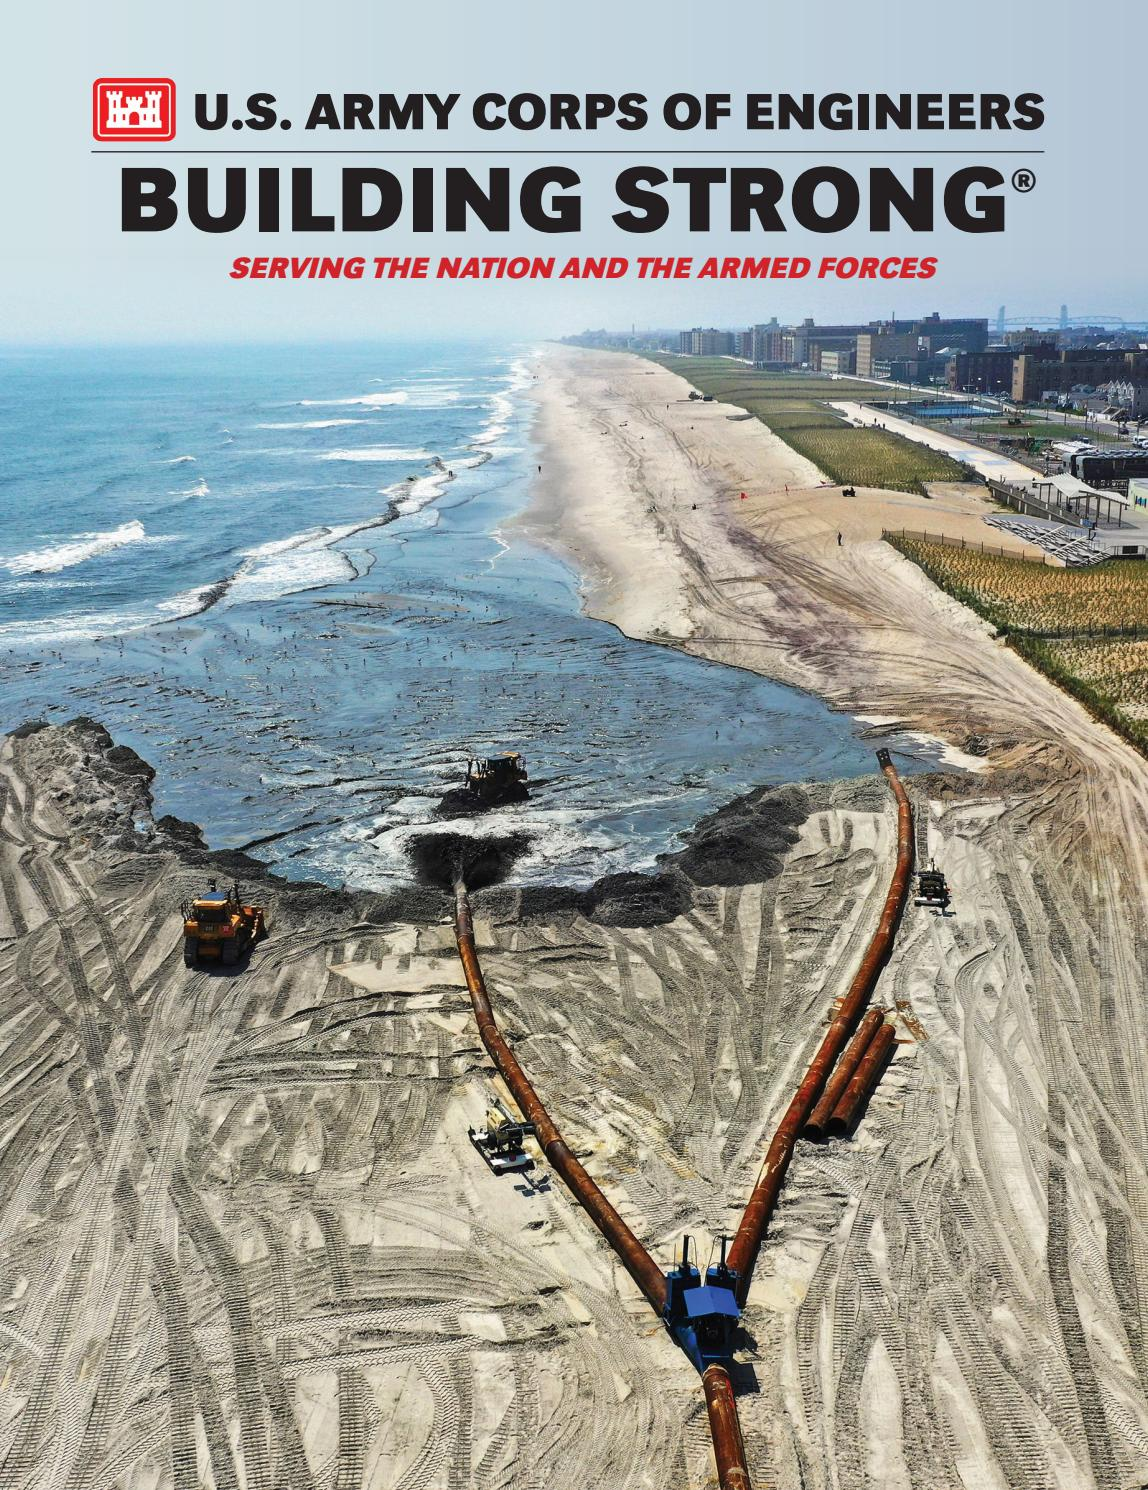 U S Army Corps Of Engineers Building Strong 2020 Edition By Faircount Media Group Issuu